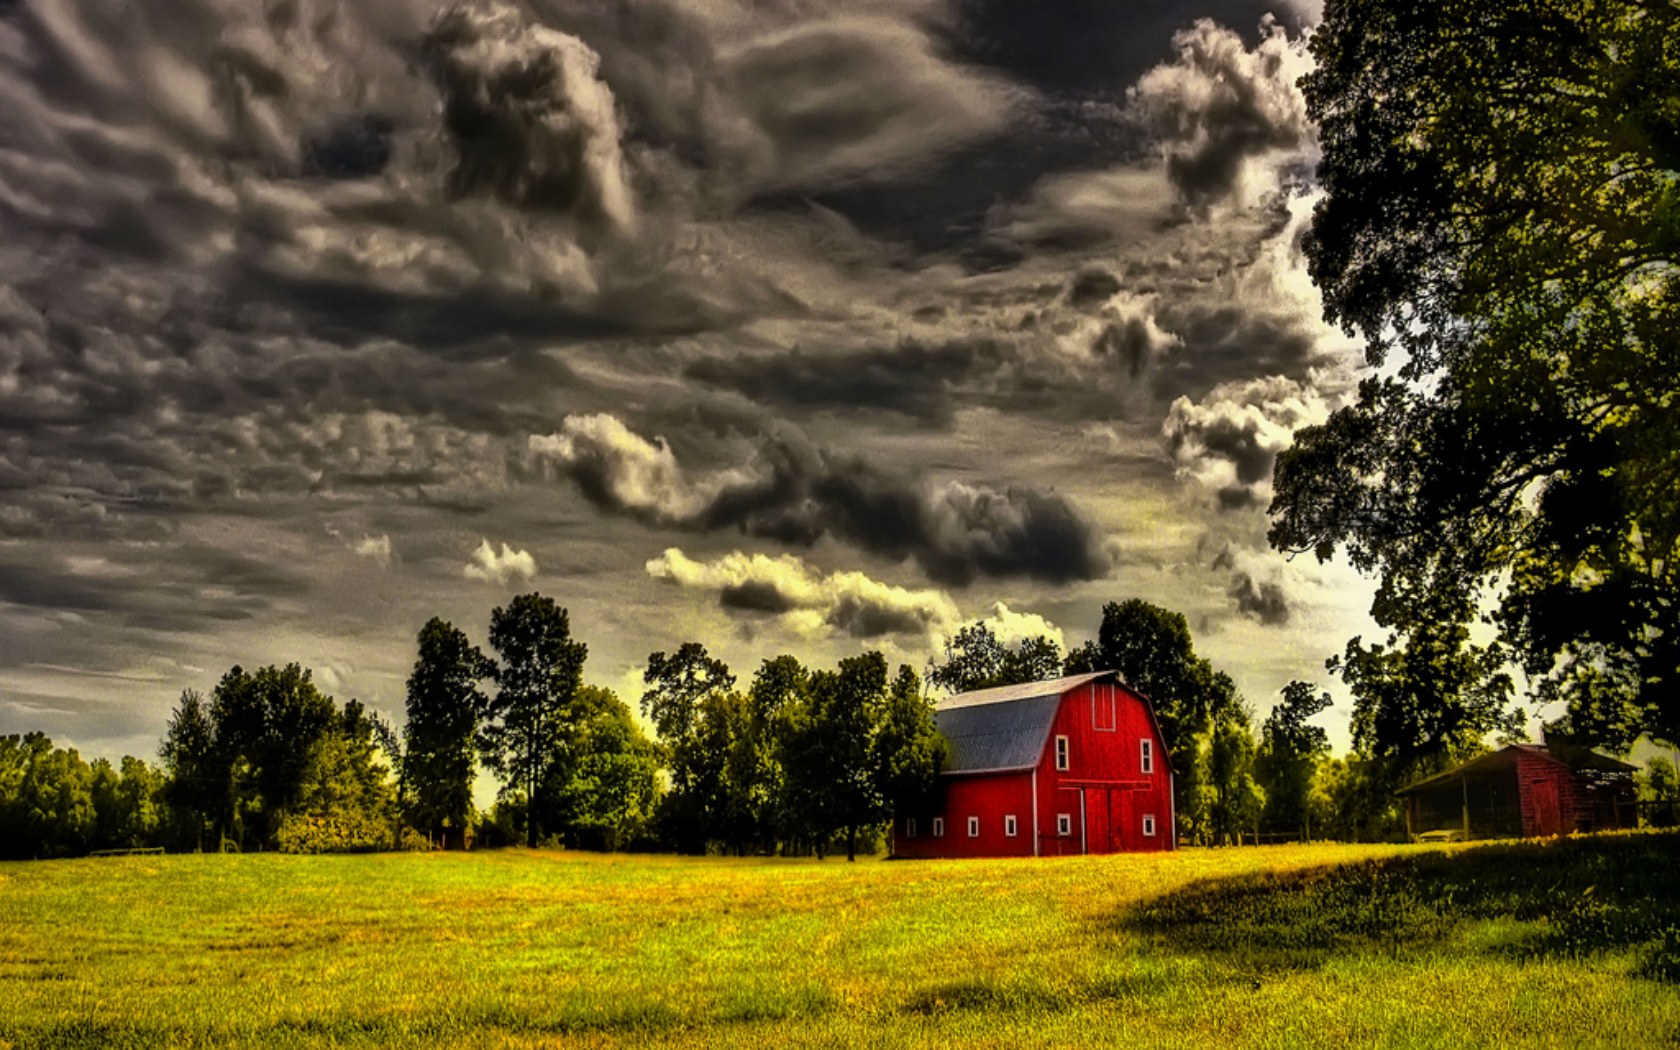 the red barn Wallpaper Background 37983 1680x1050